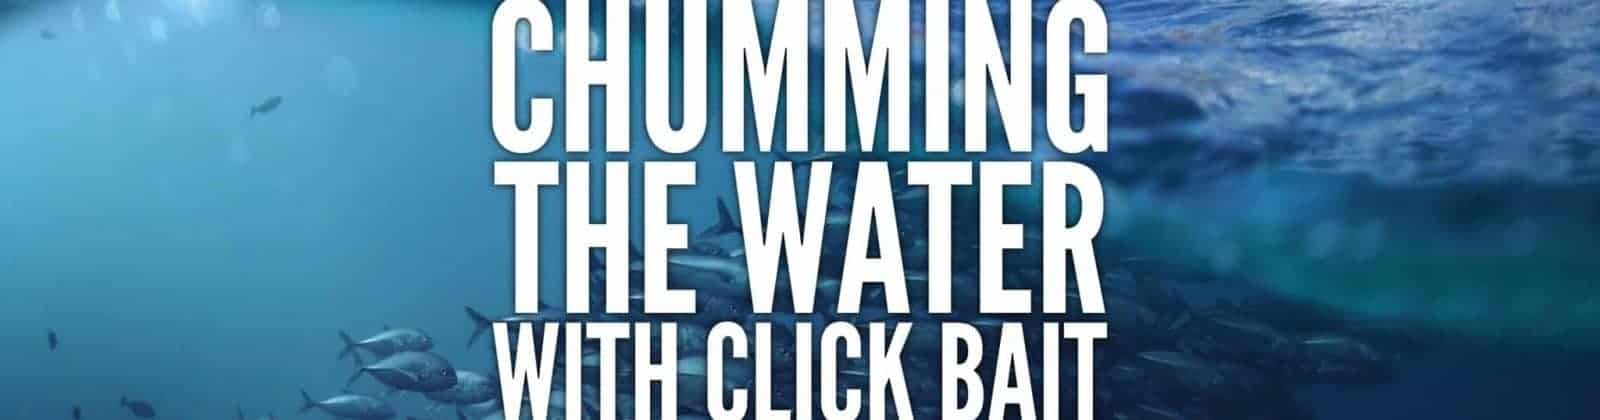 Chumming The Water With Click Bait